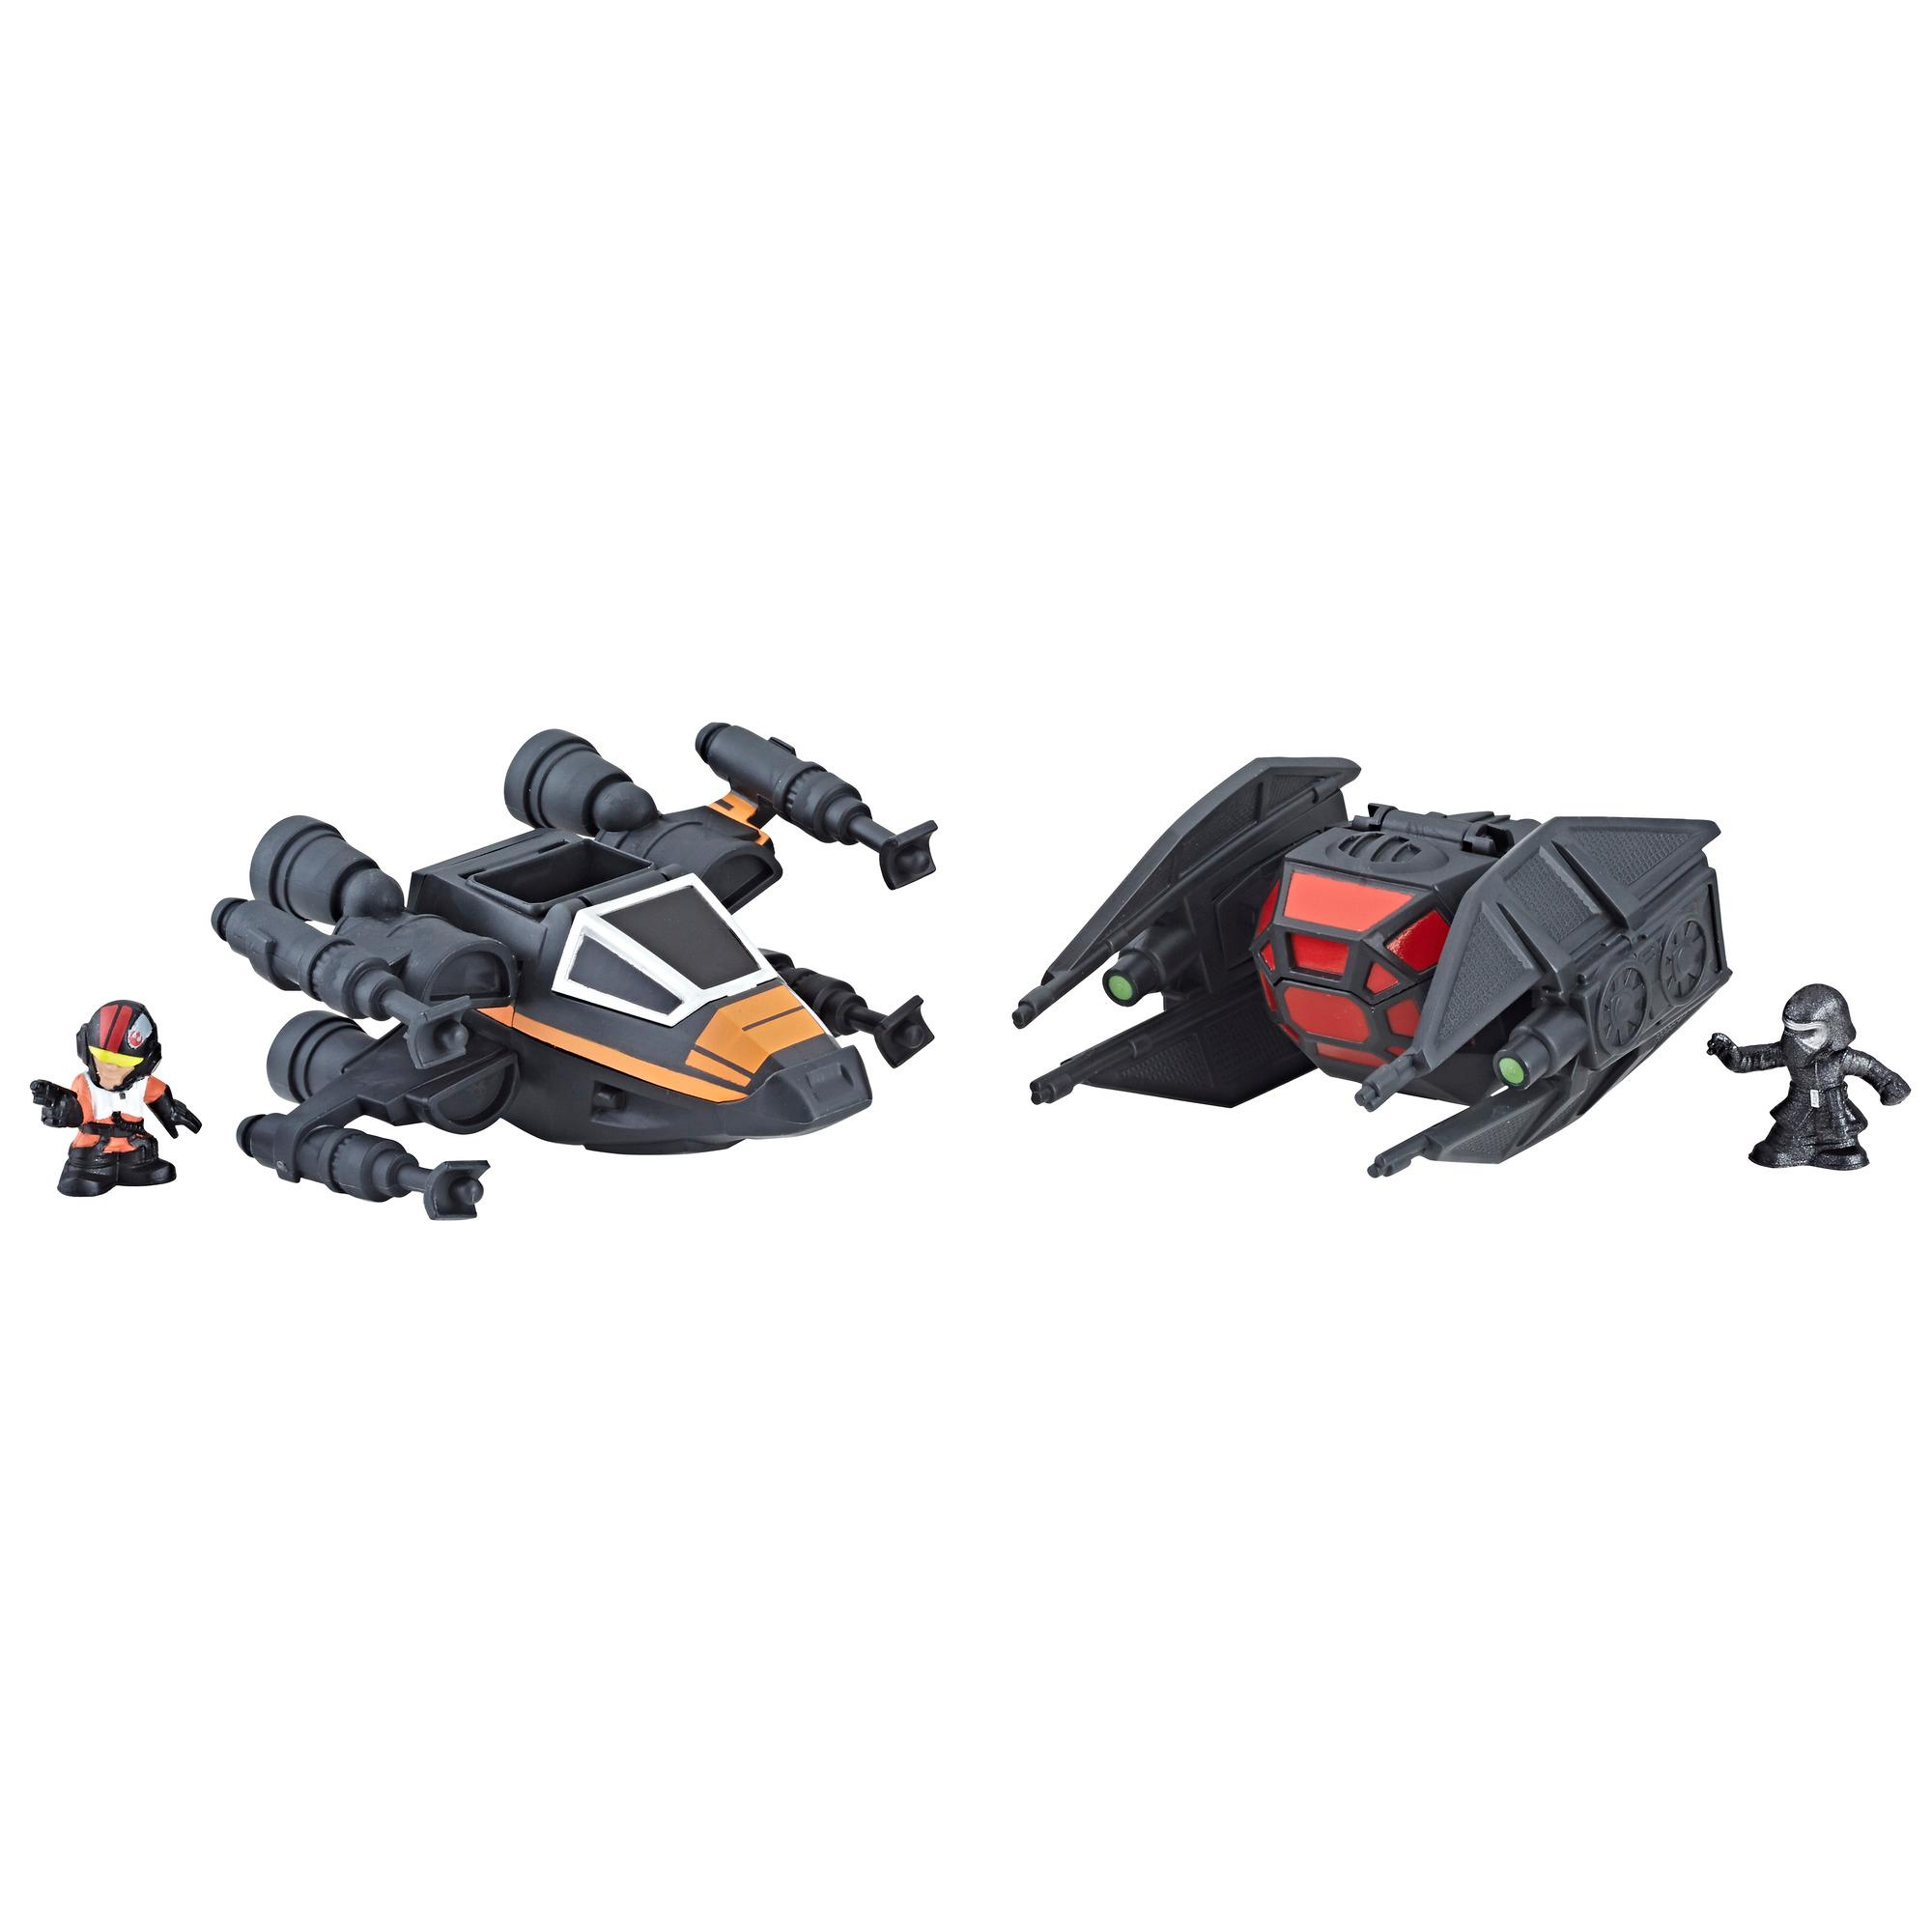 Star Wars Micro Force Poe's X-wing Fighter vs. Kylo Ren's TIE Silencer 2-Pack